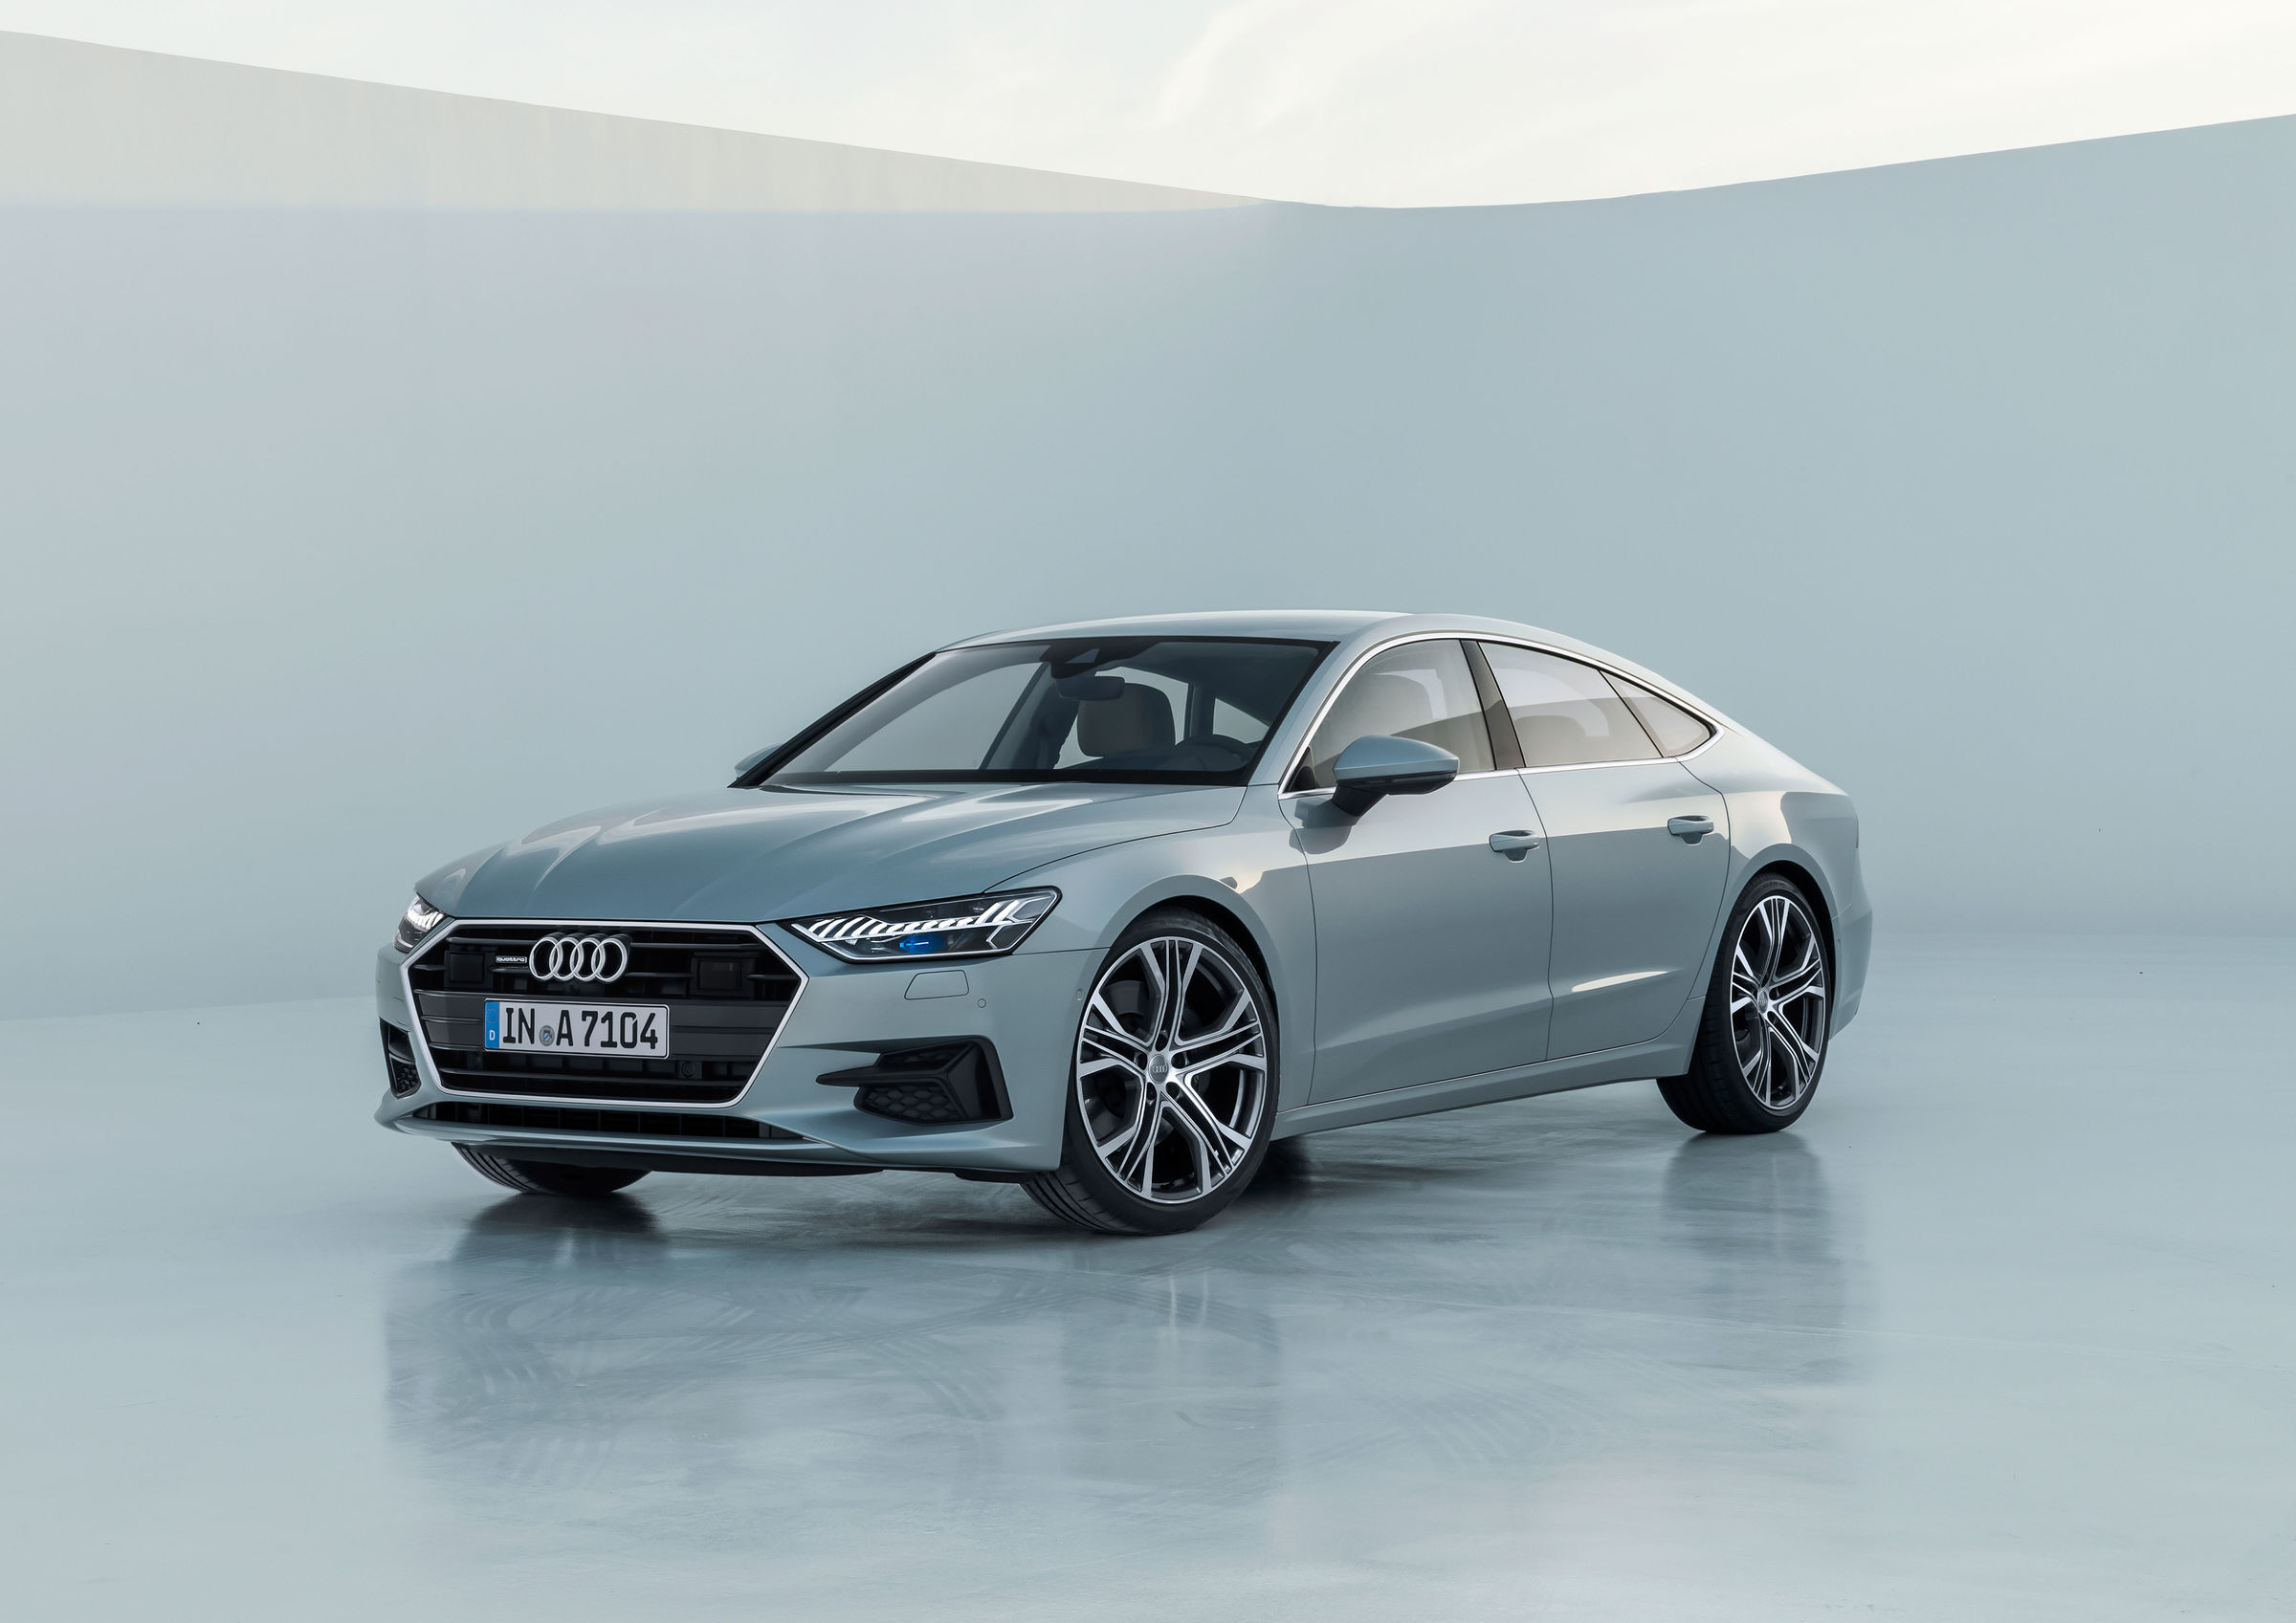 The new Audi A7 Sportback: The sporty face of the luxury cl ... Audi A India on audi a8 india, audi a3 india, audi q3 india, audi q7 india, audi r8 india, audi a5 india, 2014 audi a6 india,